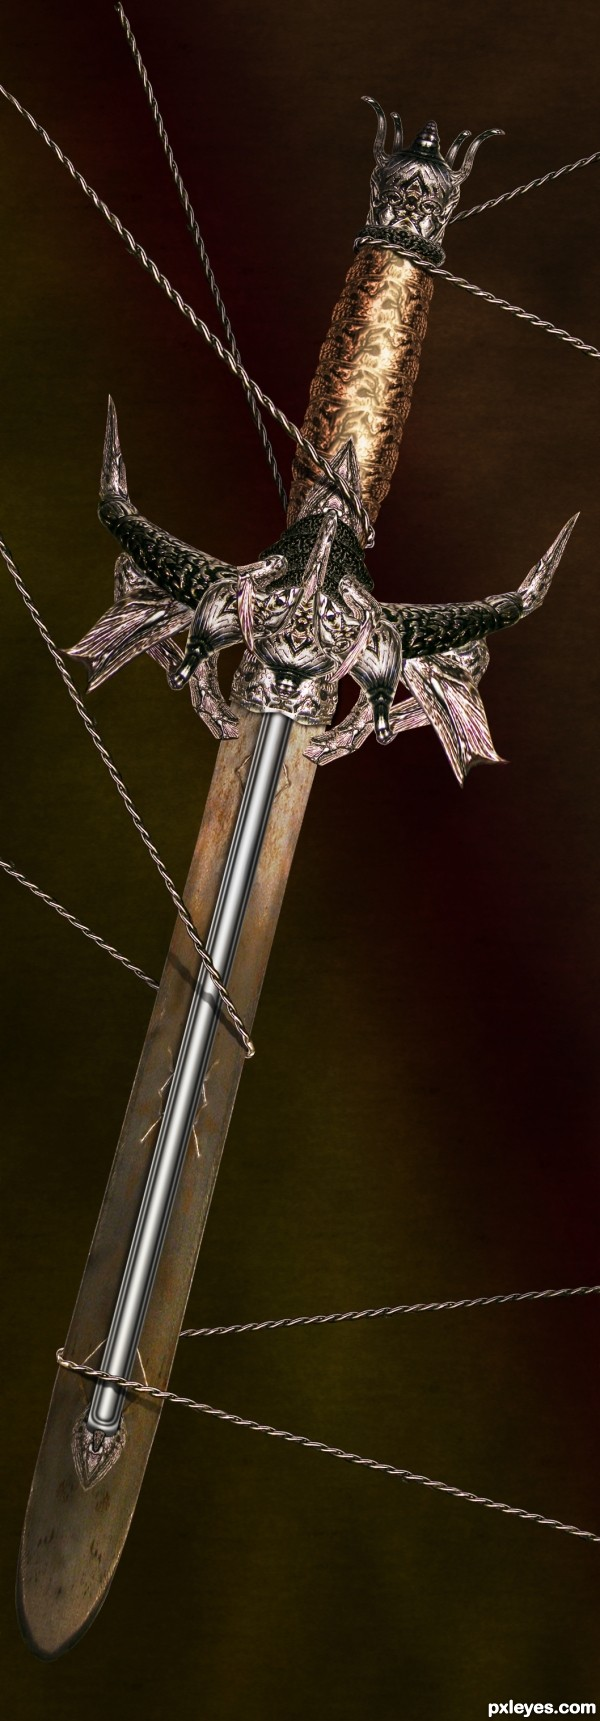 New Sword photoshop picture)